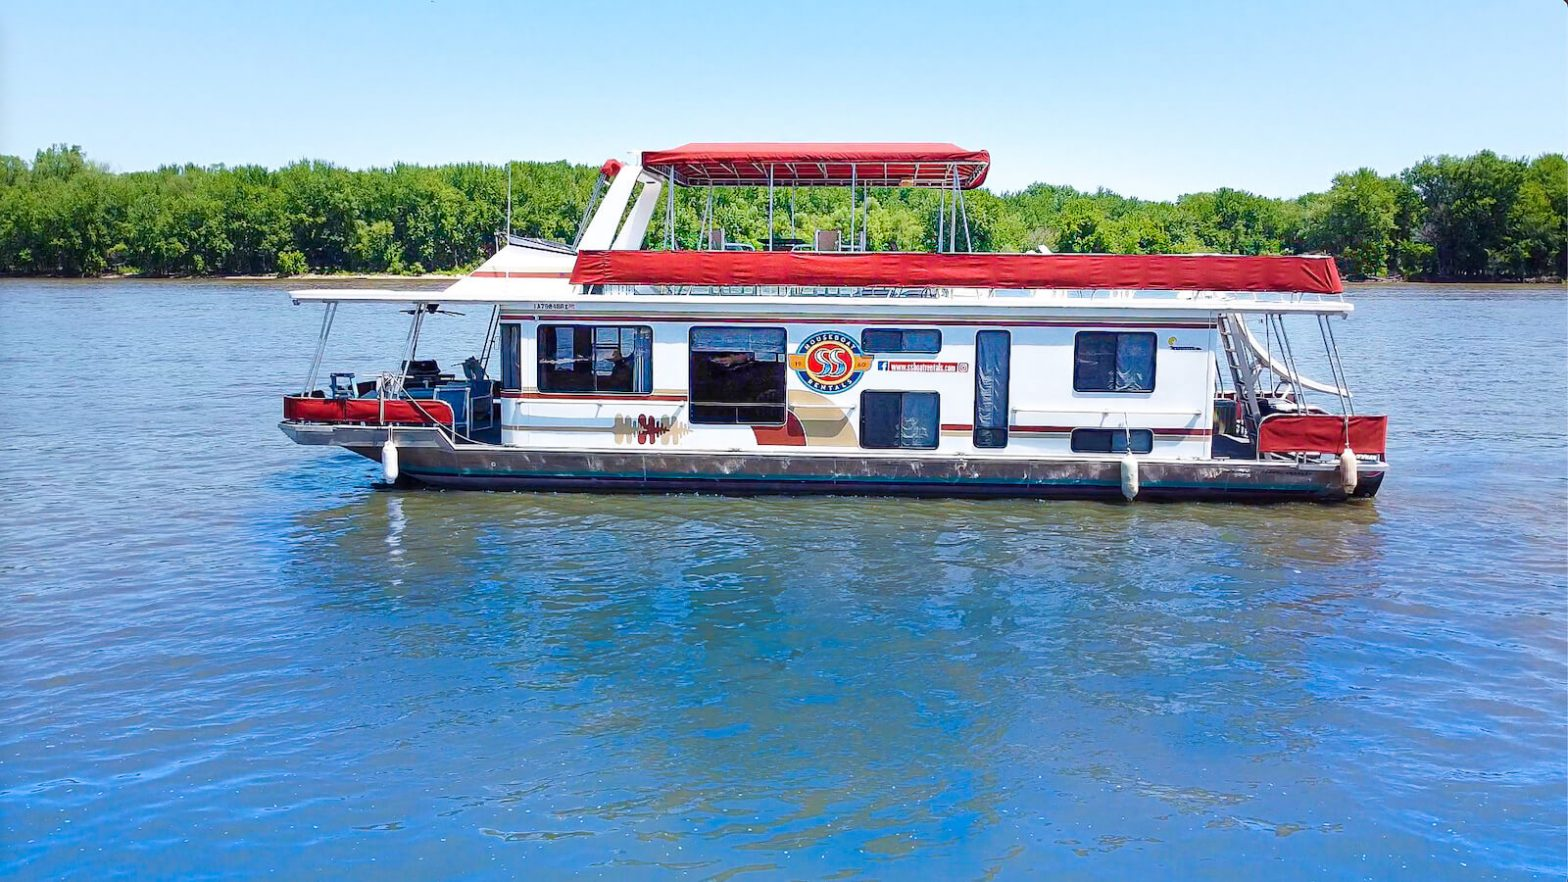 S&S Rentals 58' Riverview houseboat